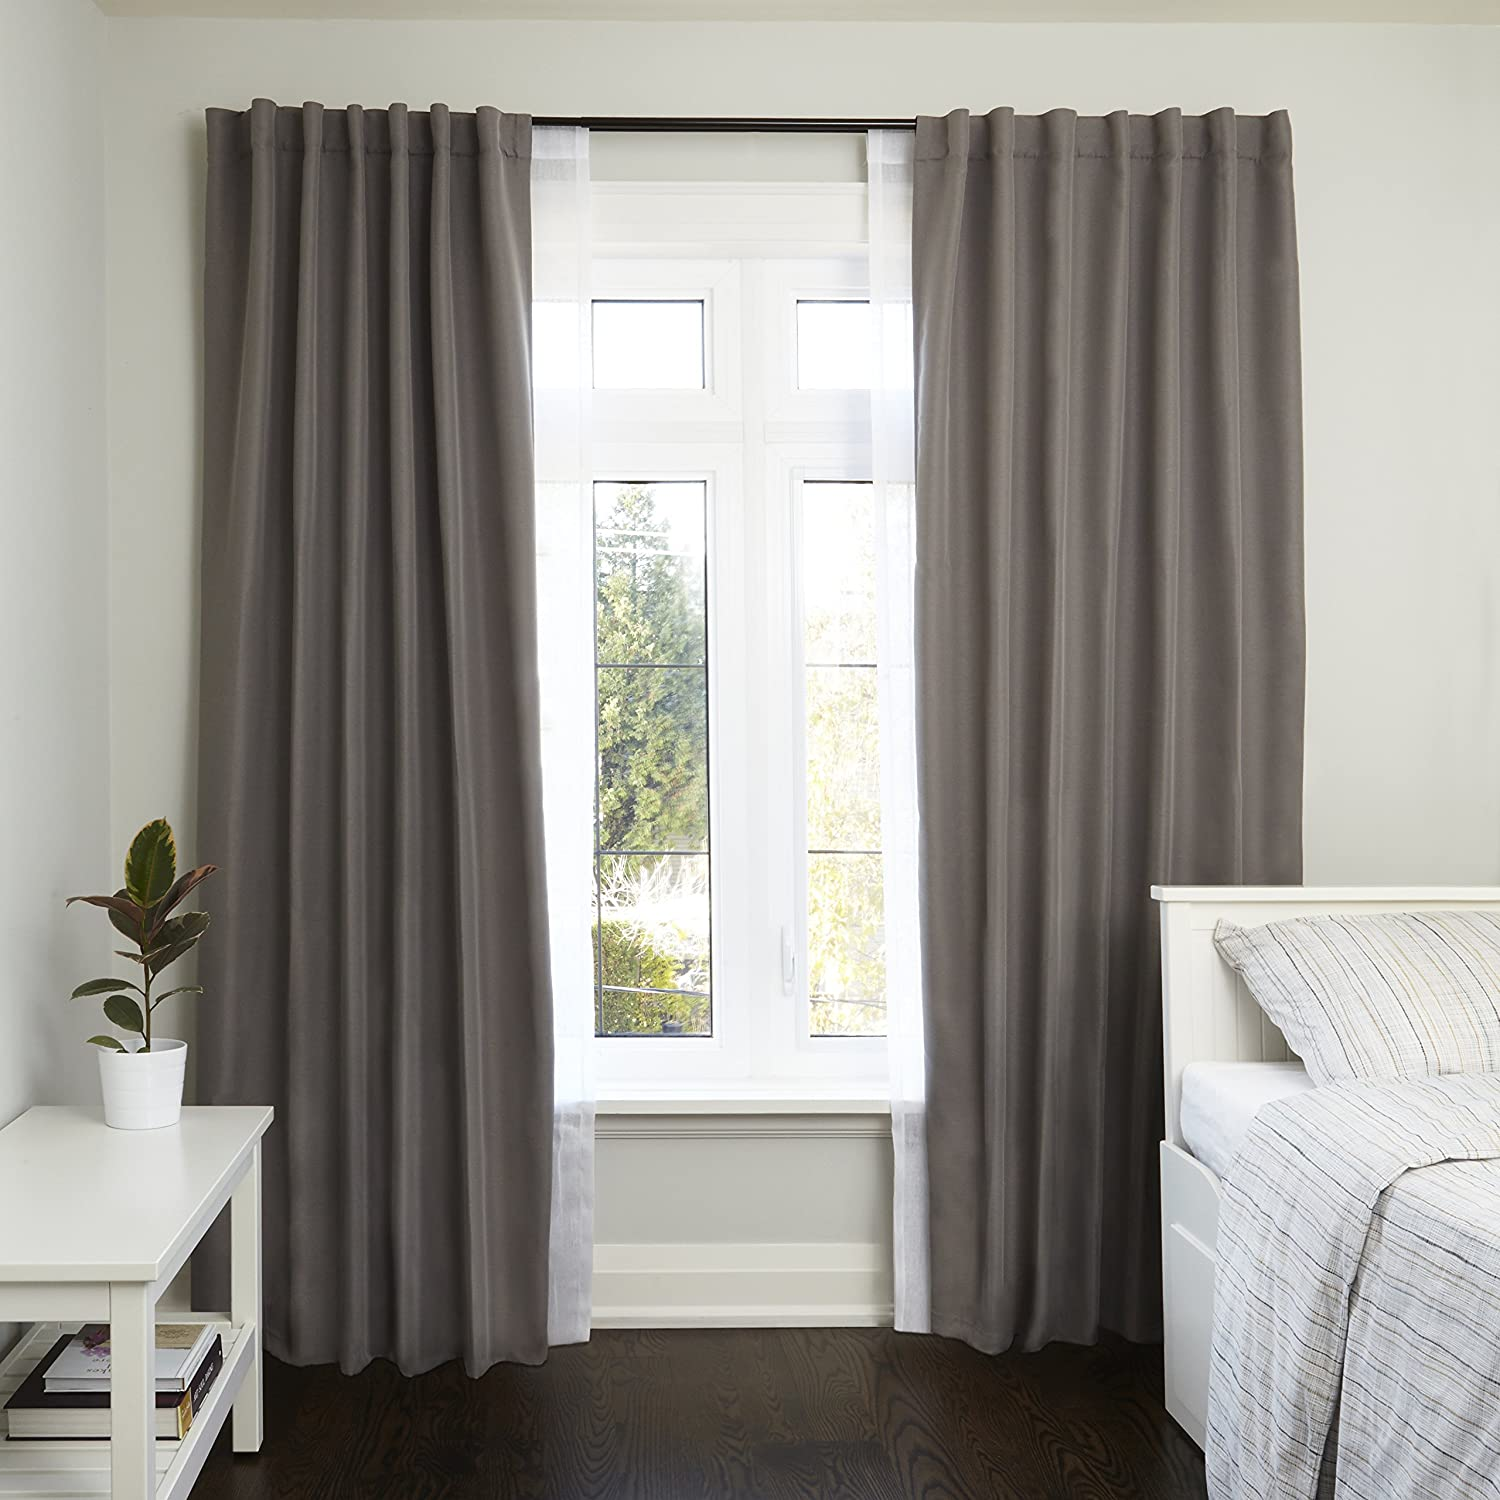 """Umbra Twilight Double Black Out Window Curtain Rod Nickel 48 to 88/"""" Wrap Around Adjustable Double Curtain Rod for Blackout Curtains"""